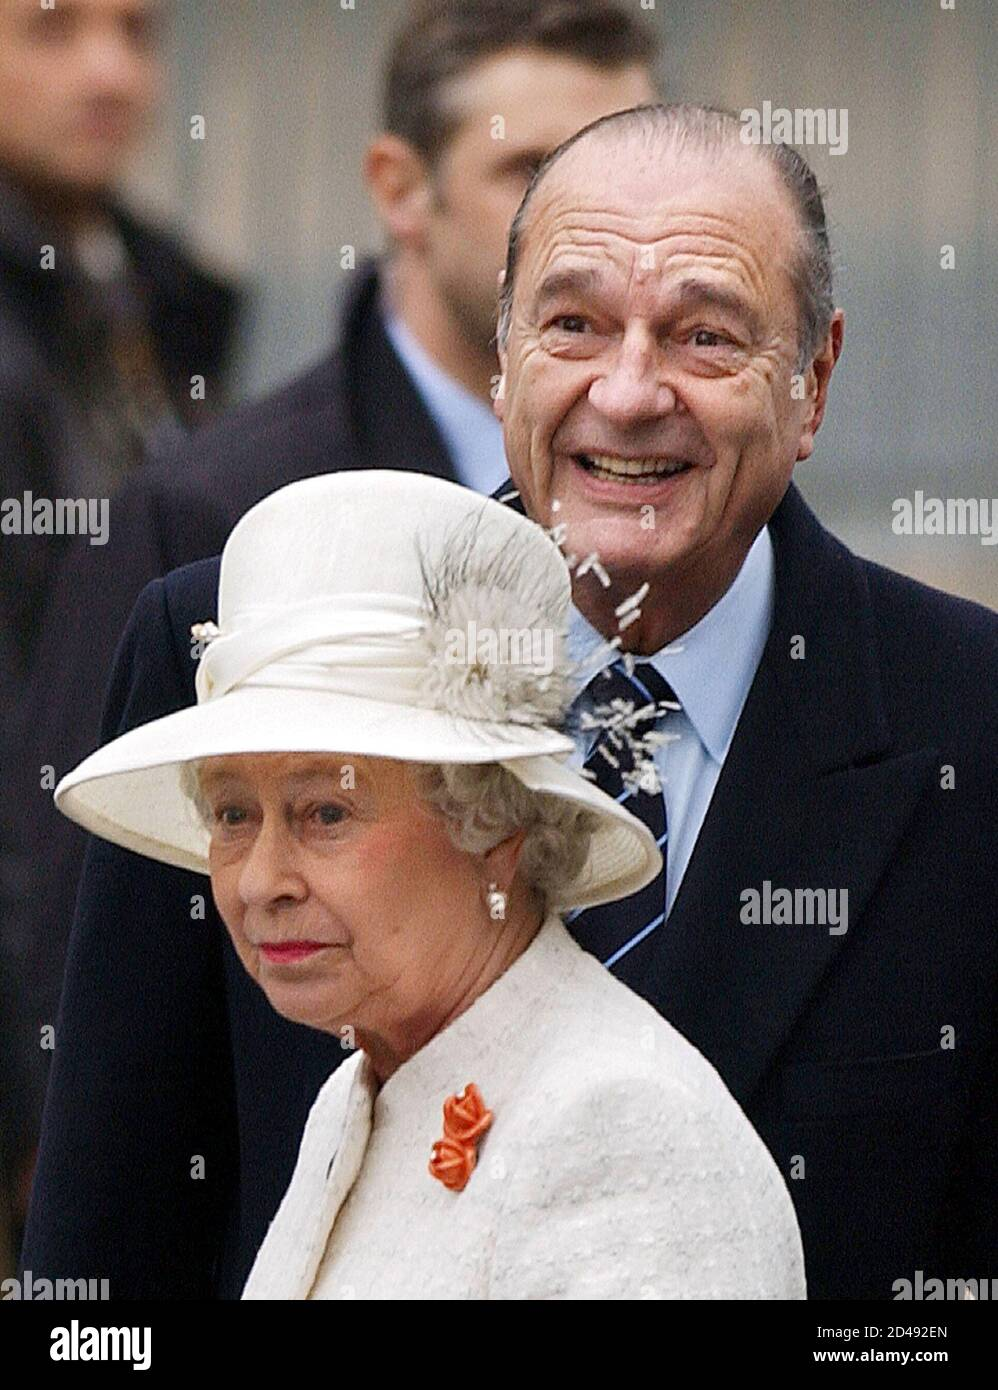 French President Jacques Chirac receives Queen Elizabeth II during an official ceremony with full military honours on the Champs Elysees in Paris, April 5, 2004. Queen Elizabeth II and her husband The Duke of Edinburgh start a three-day state visit to mark the centenary of the Entente Cordiale, the colonial-era promise of cross-channel friendship between Britain and France. REUTERS/Eric Feferberg/Pool  JES/WS Foto Stock